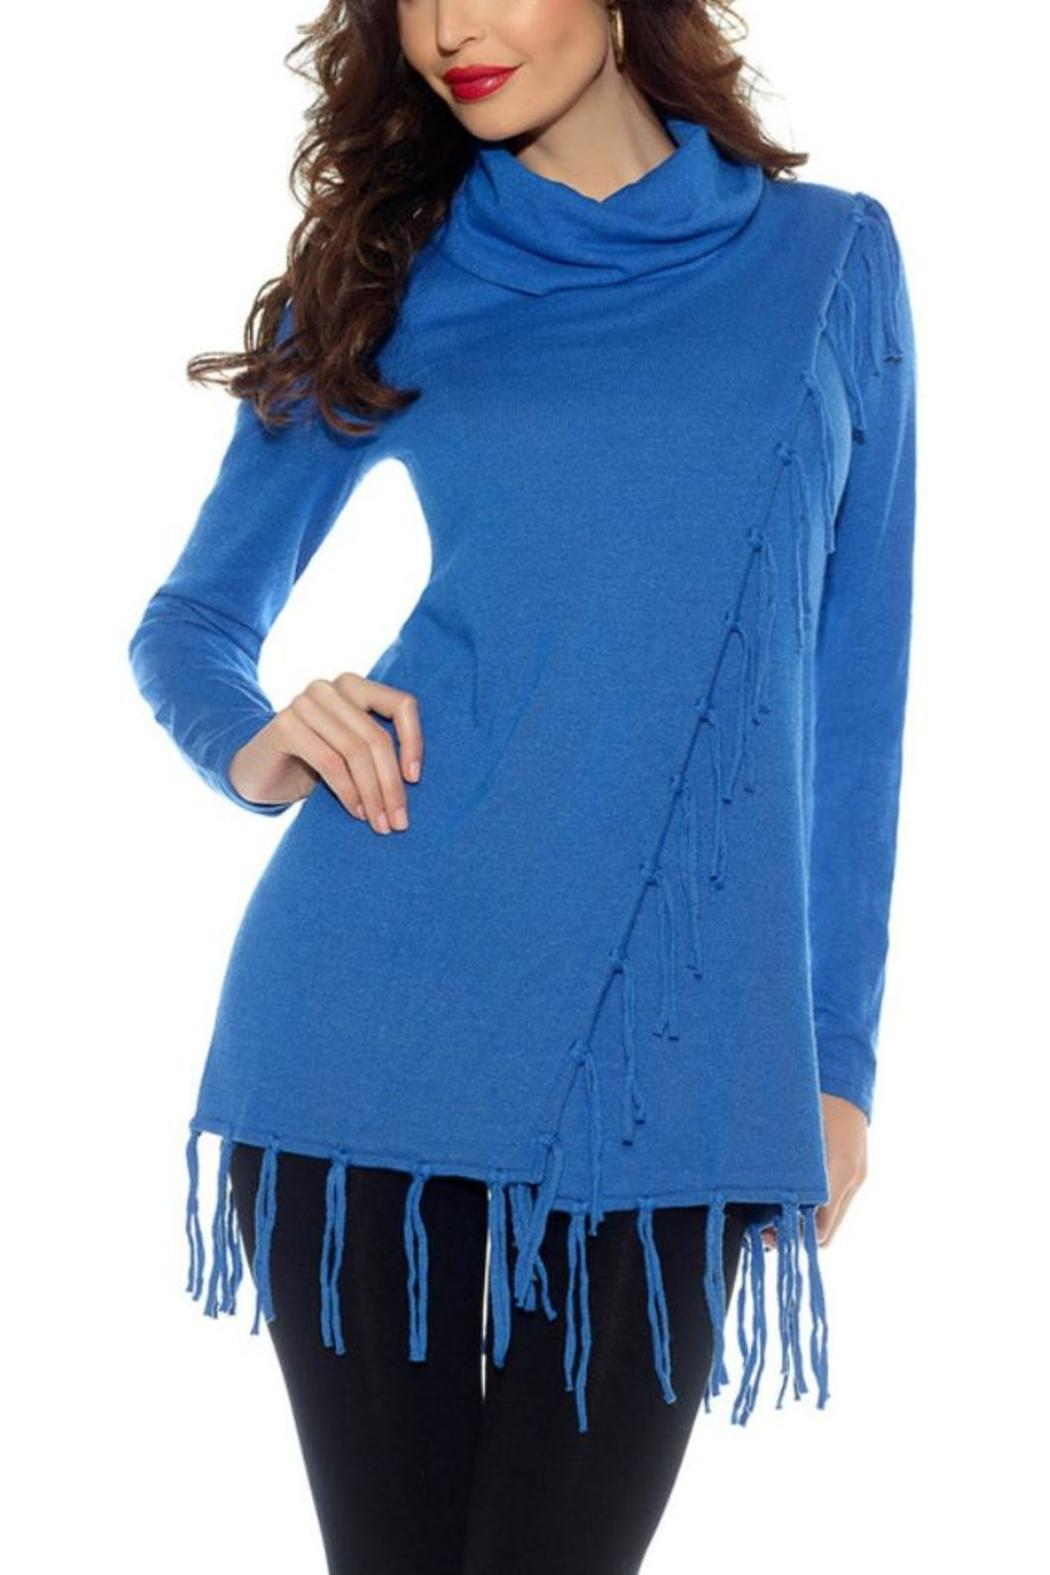 Belldini Fringe Sweater from Kentucky by Red Room Boutique ...